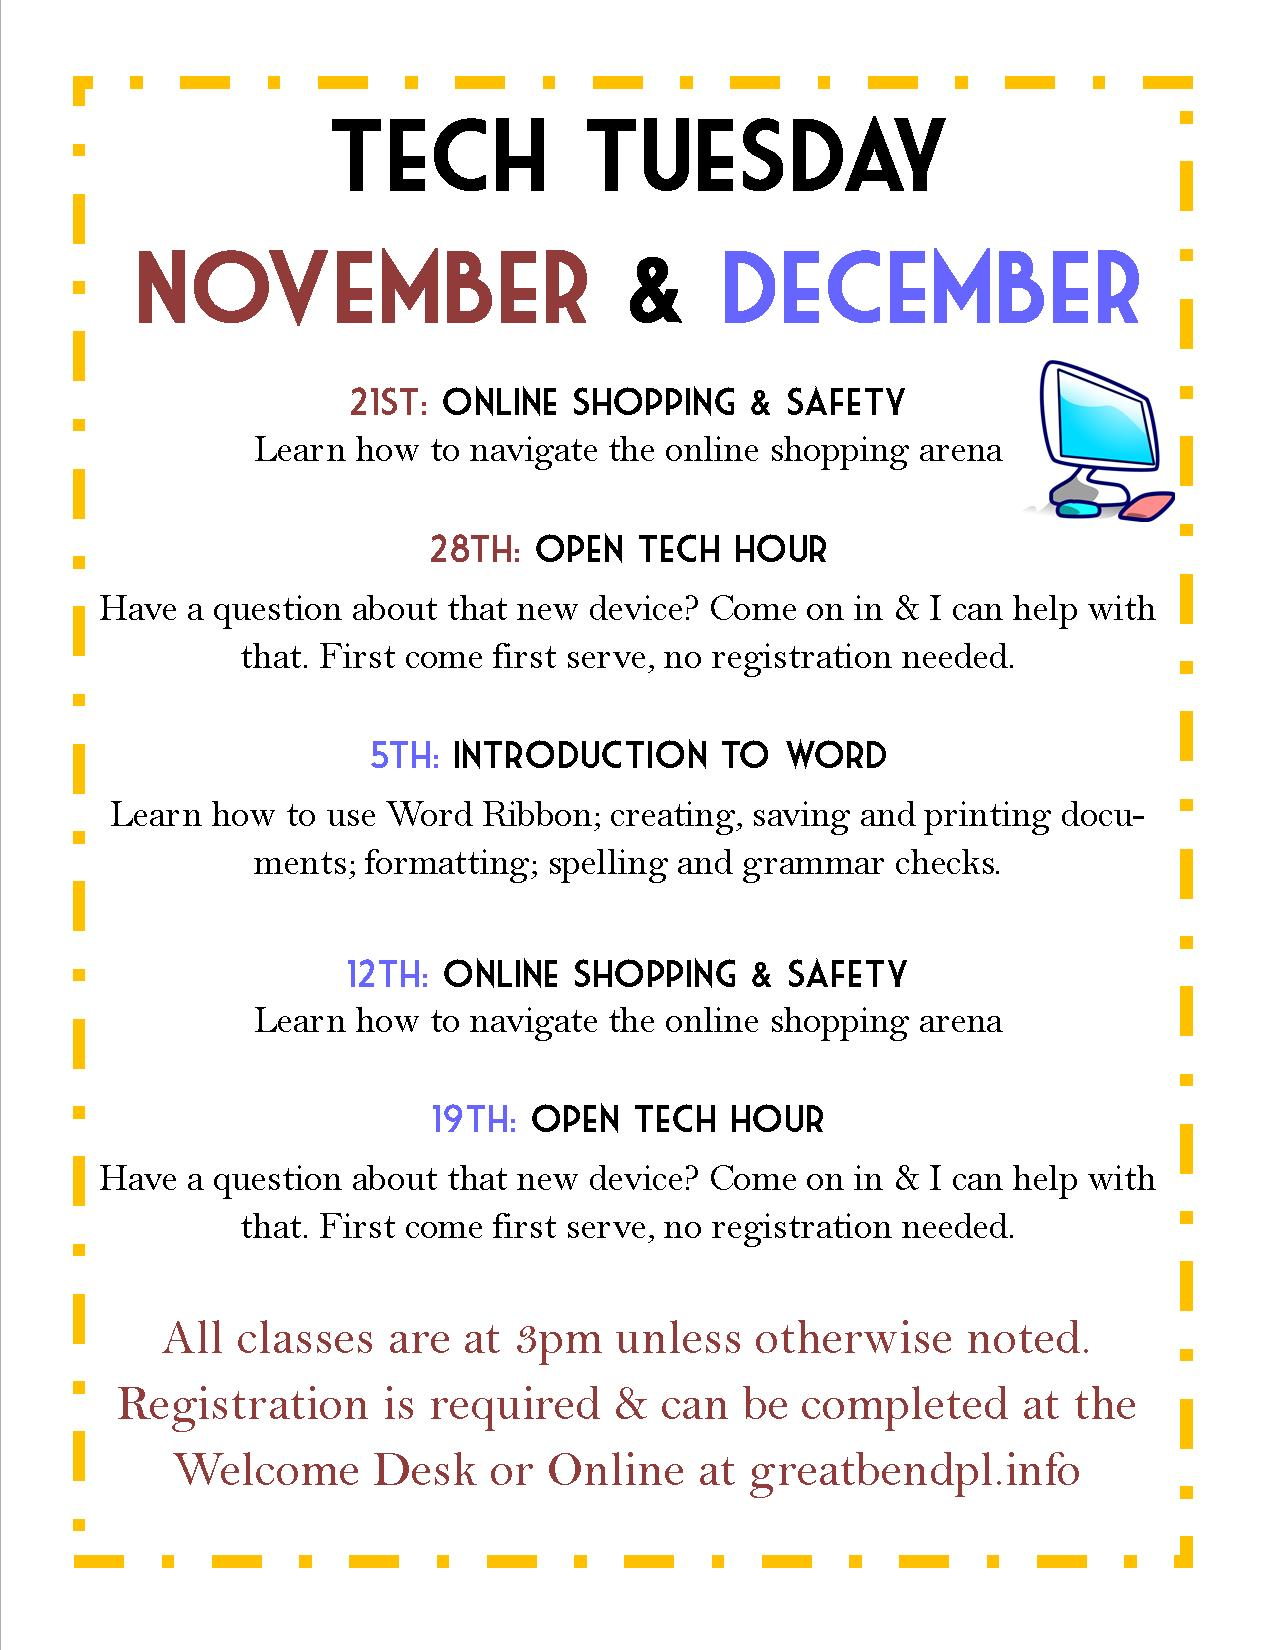 Tech Tuesday: Online Shopping & Safety